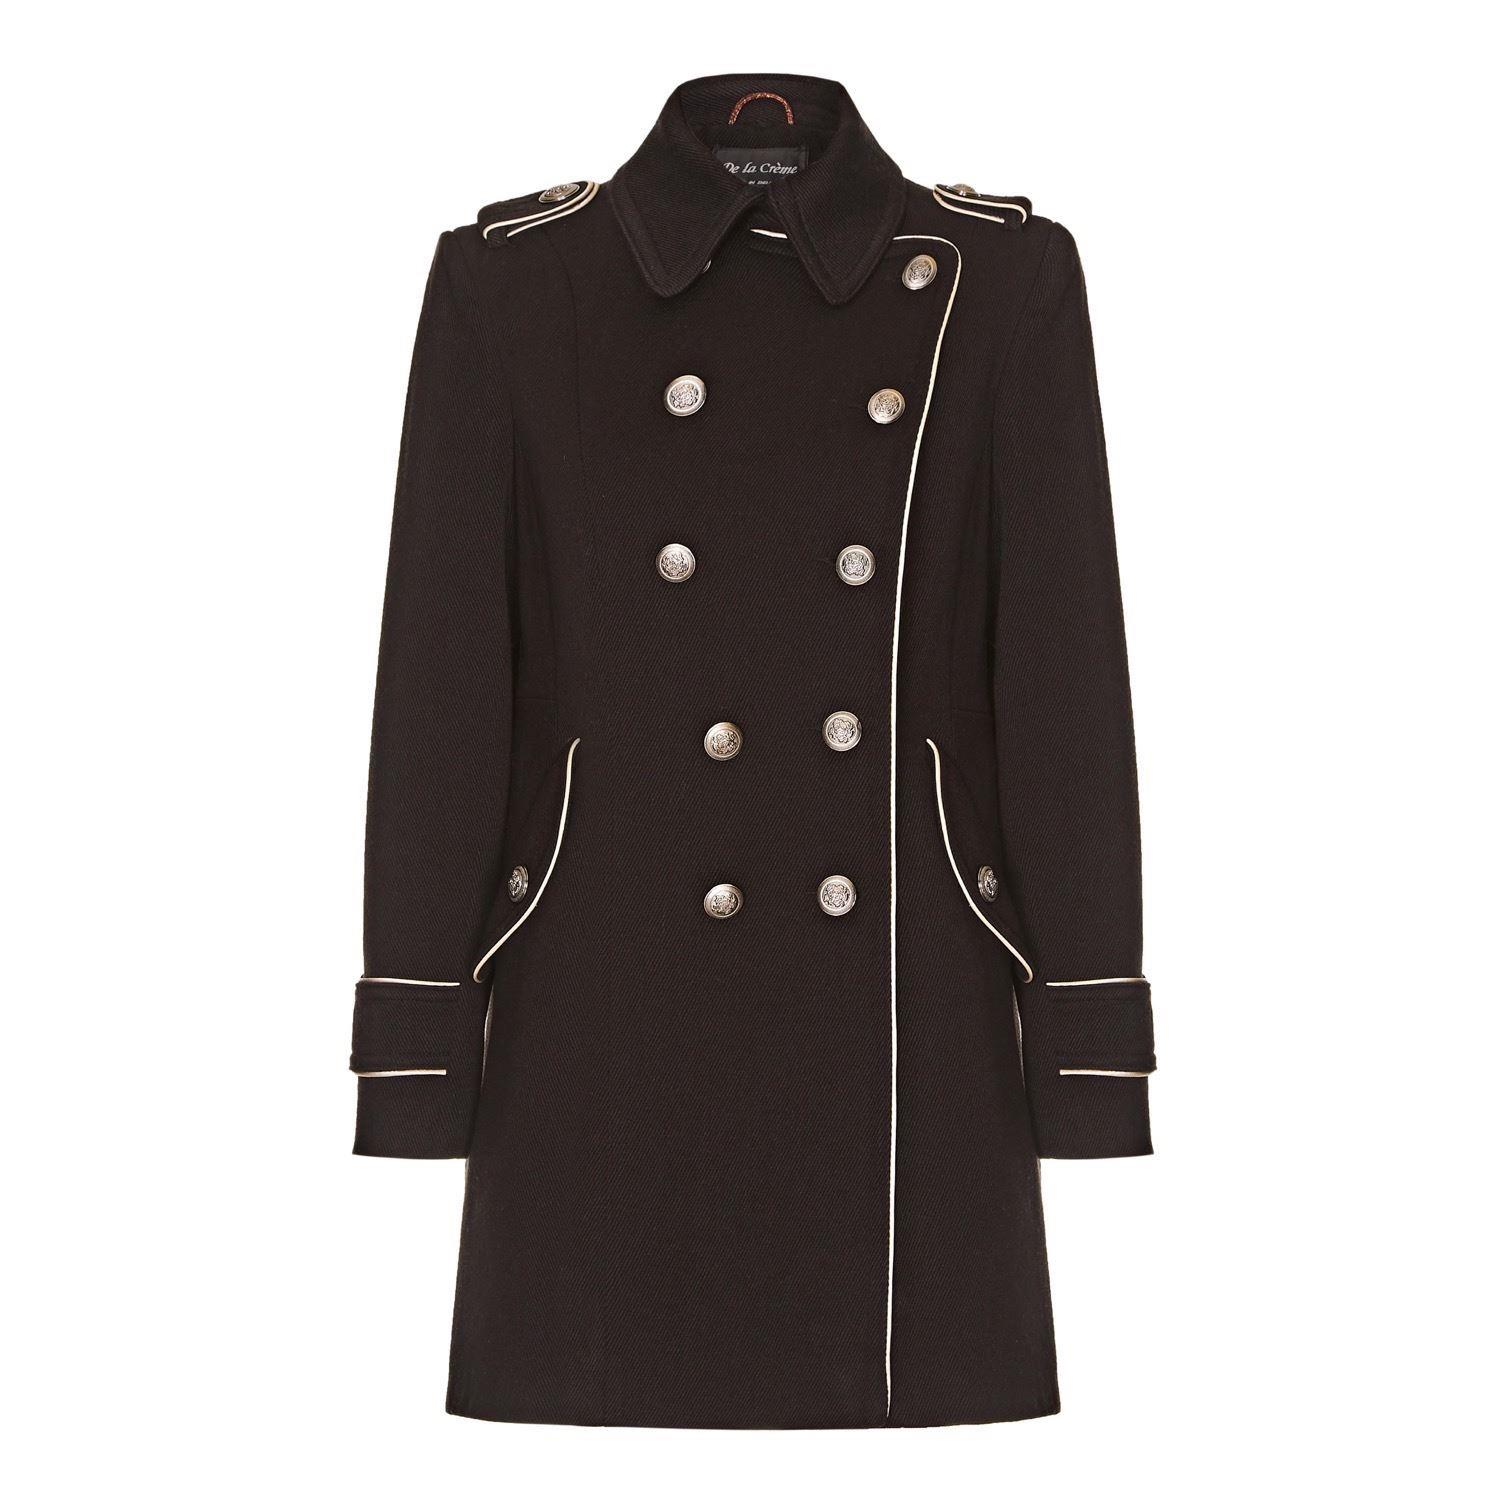 Anastasia Womens Winter Military Coat With Piping